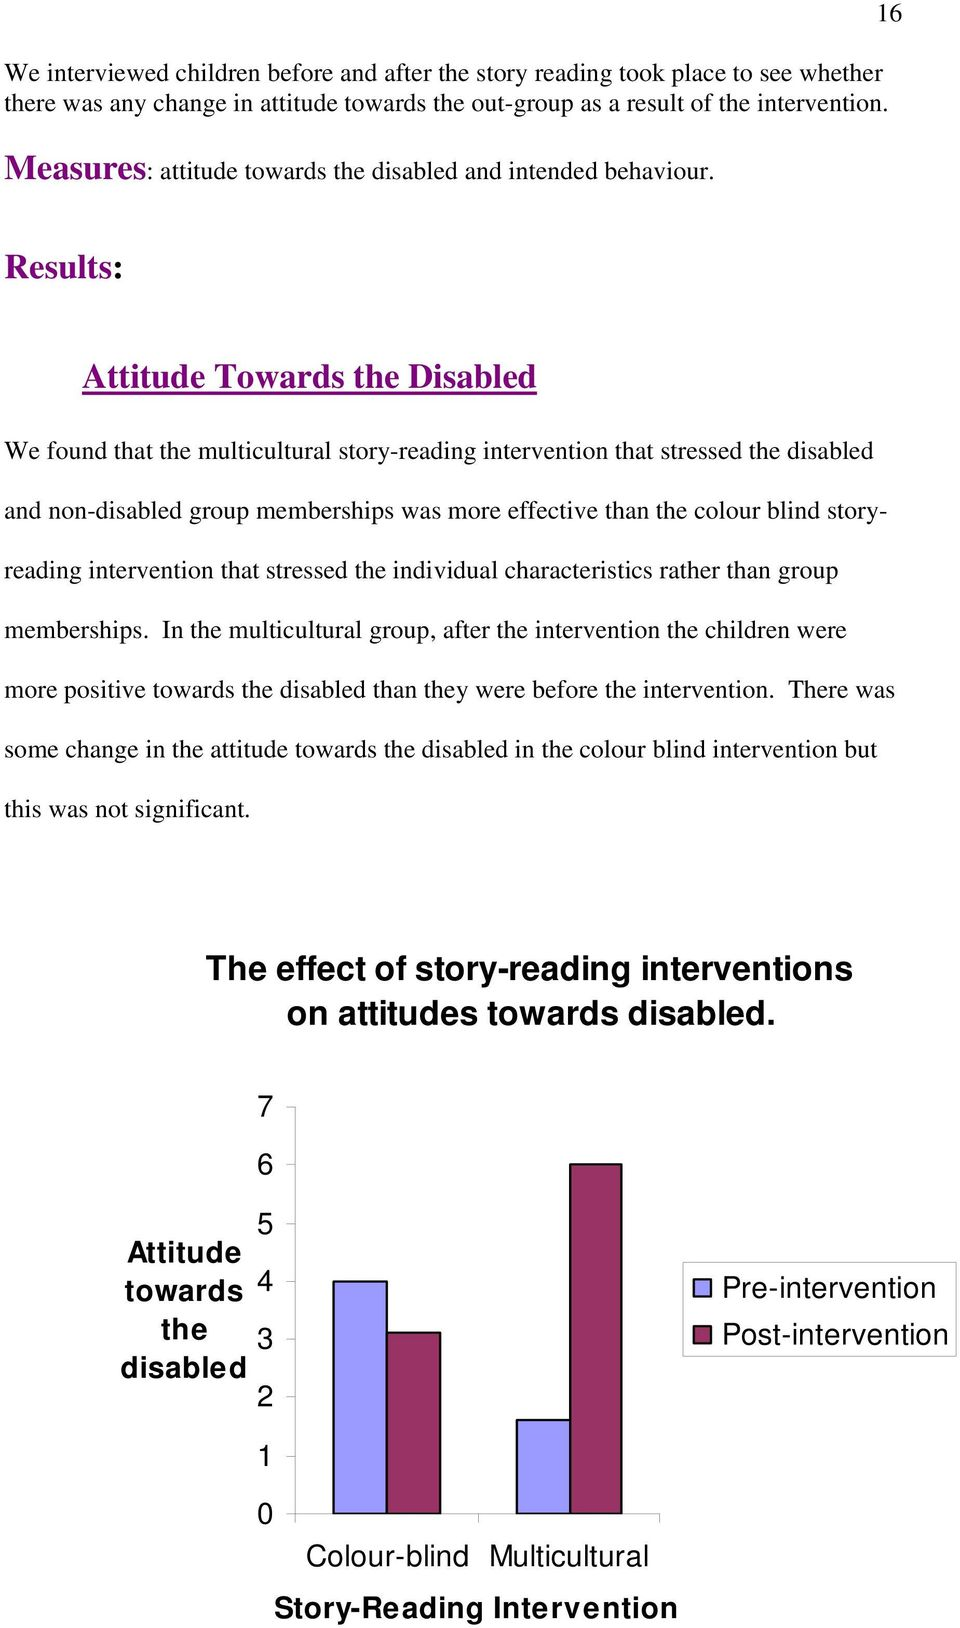 16 Results: Attitude Towards the Disabled We found that the multicultural story-reading intervention that stressed the disabled and non-disabled group memberships was more effective than the colour